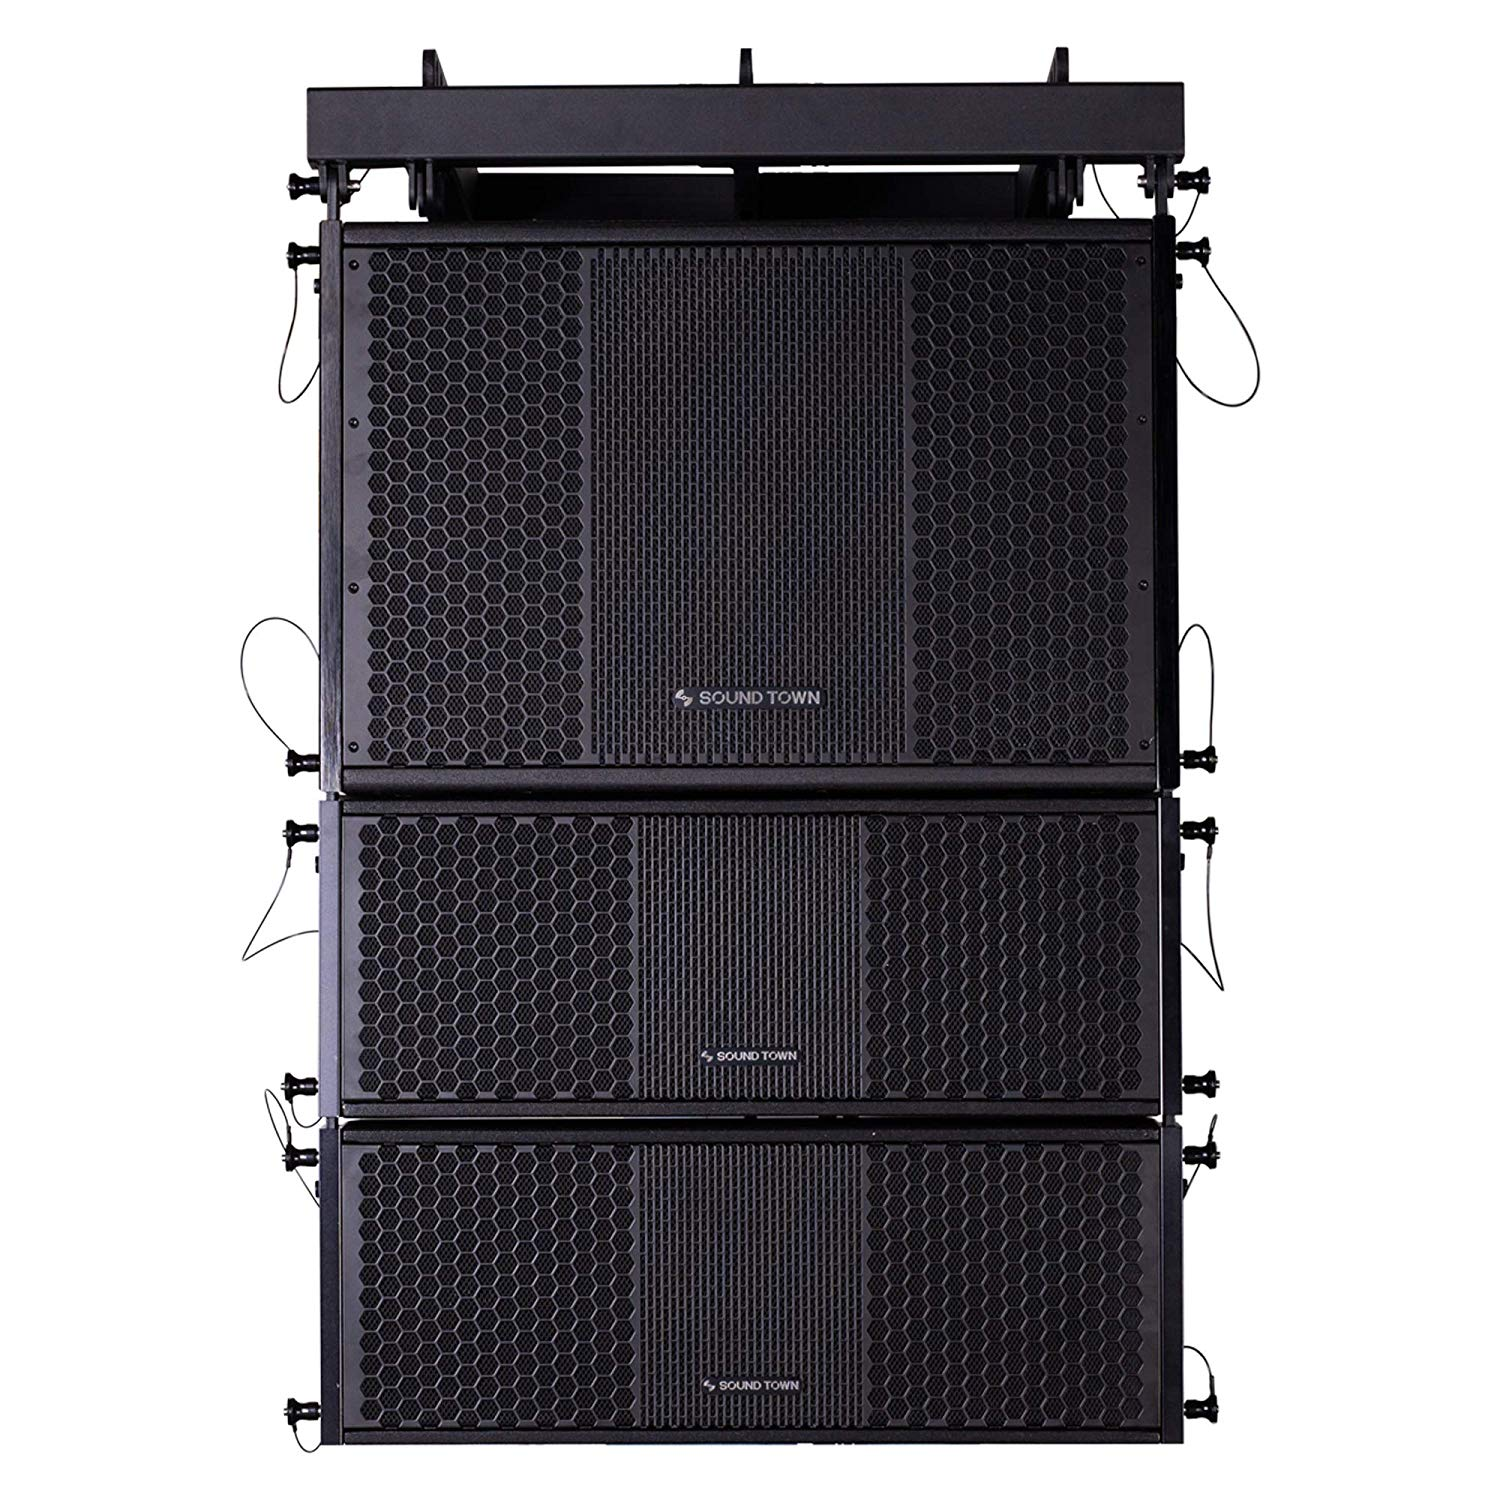 Loa line array 003